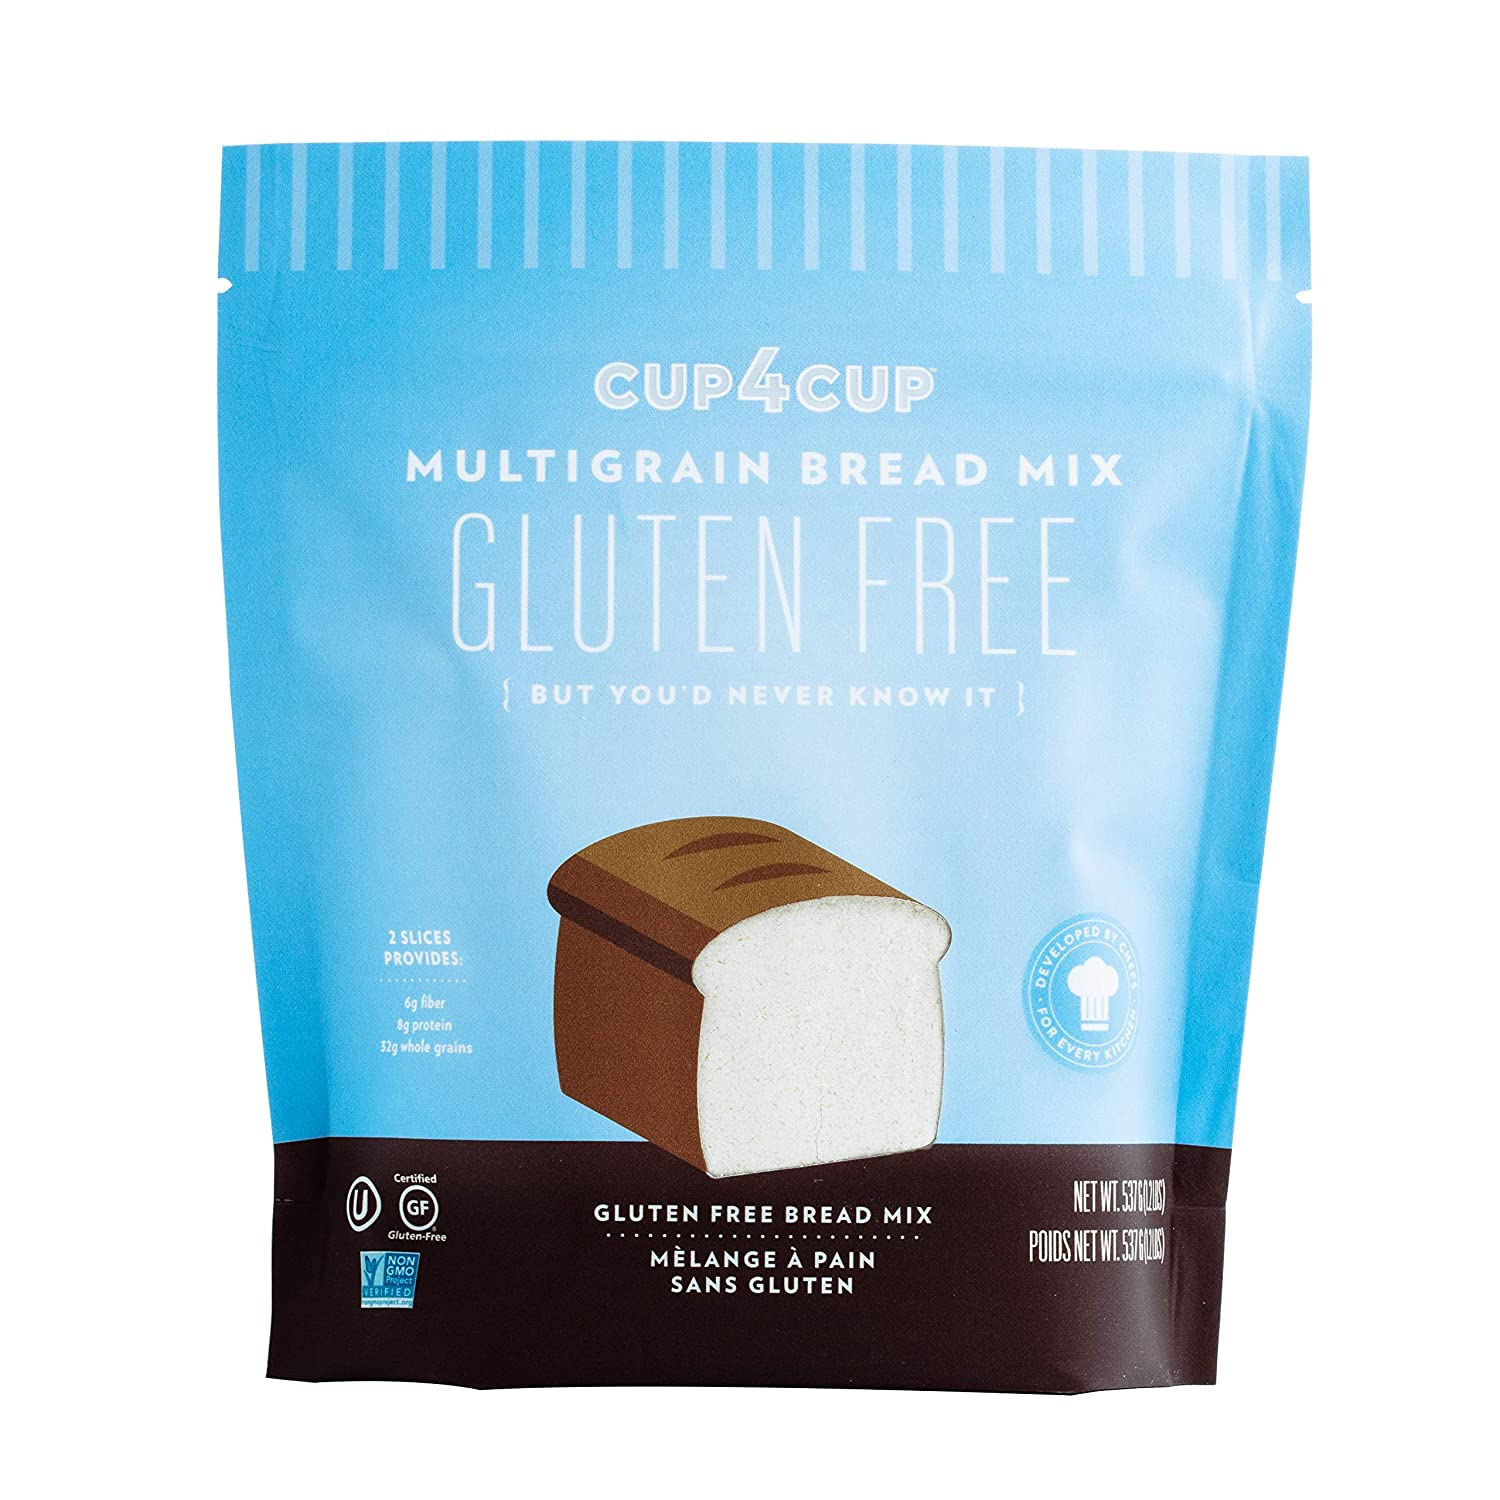 National products Cup4Cup Gluten Free Multigrain Mix lbs Bread Miami Mall 1.2